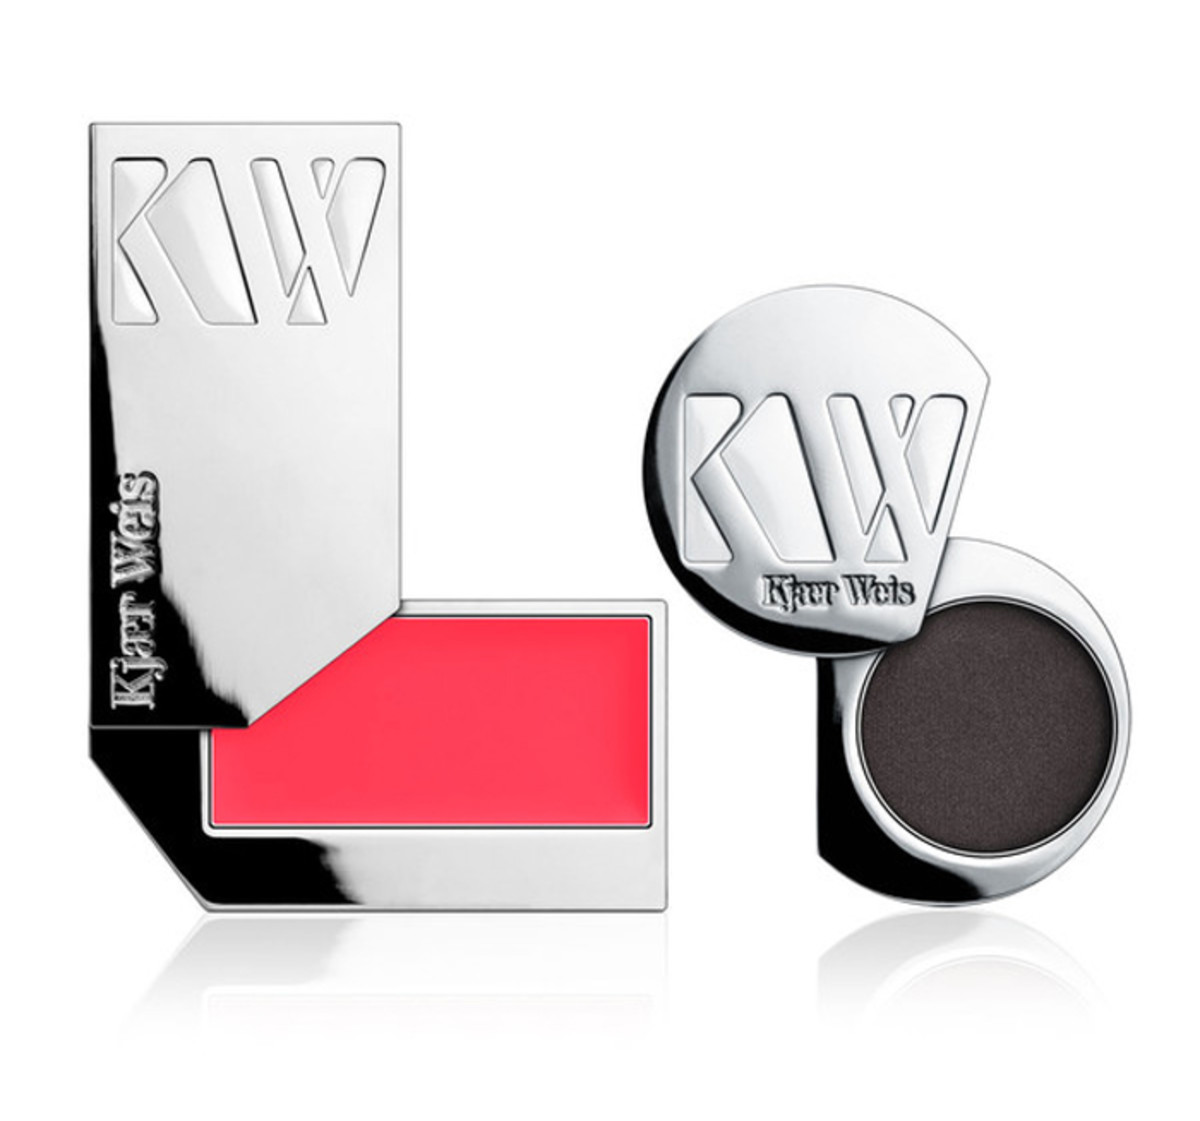 Kjaer Weis The Essential Duo No. 3